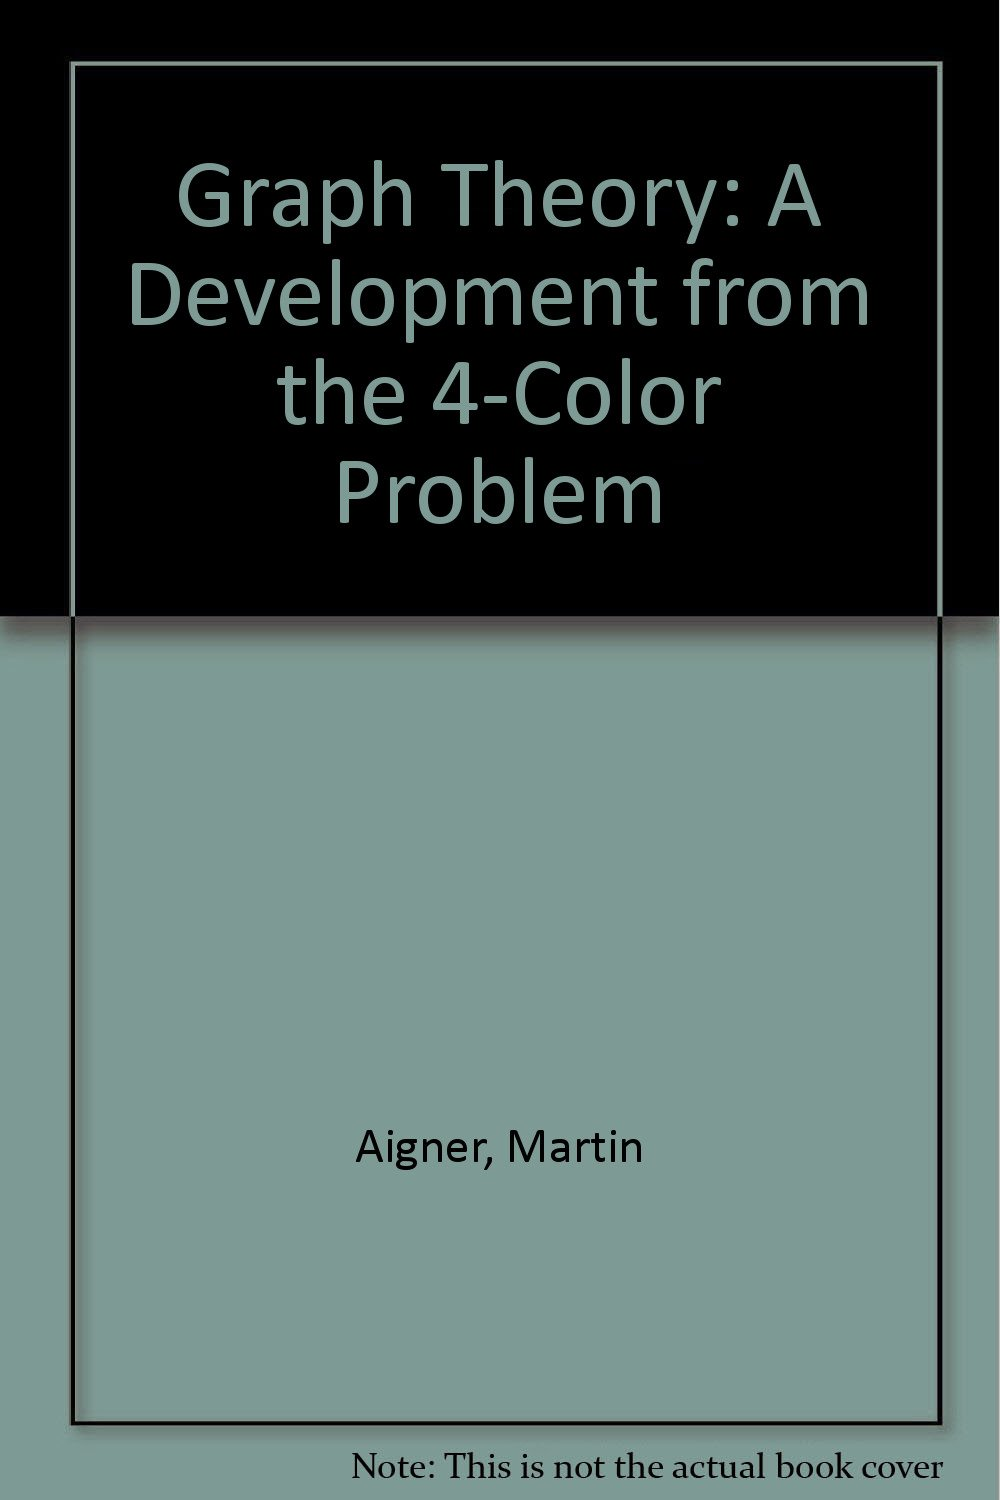 Graph theory: a development from the 4-color problem